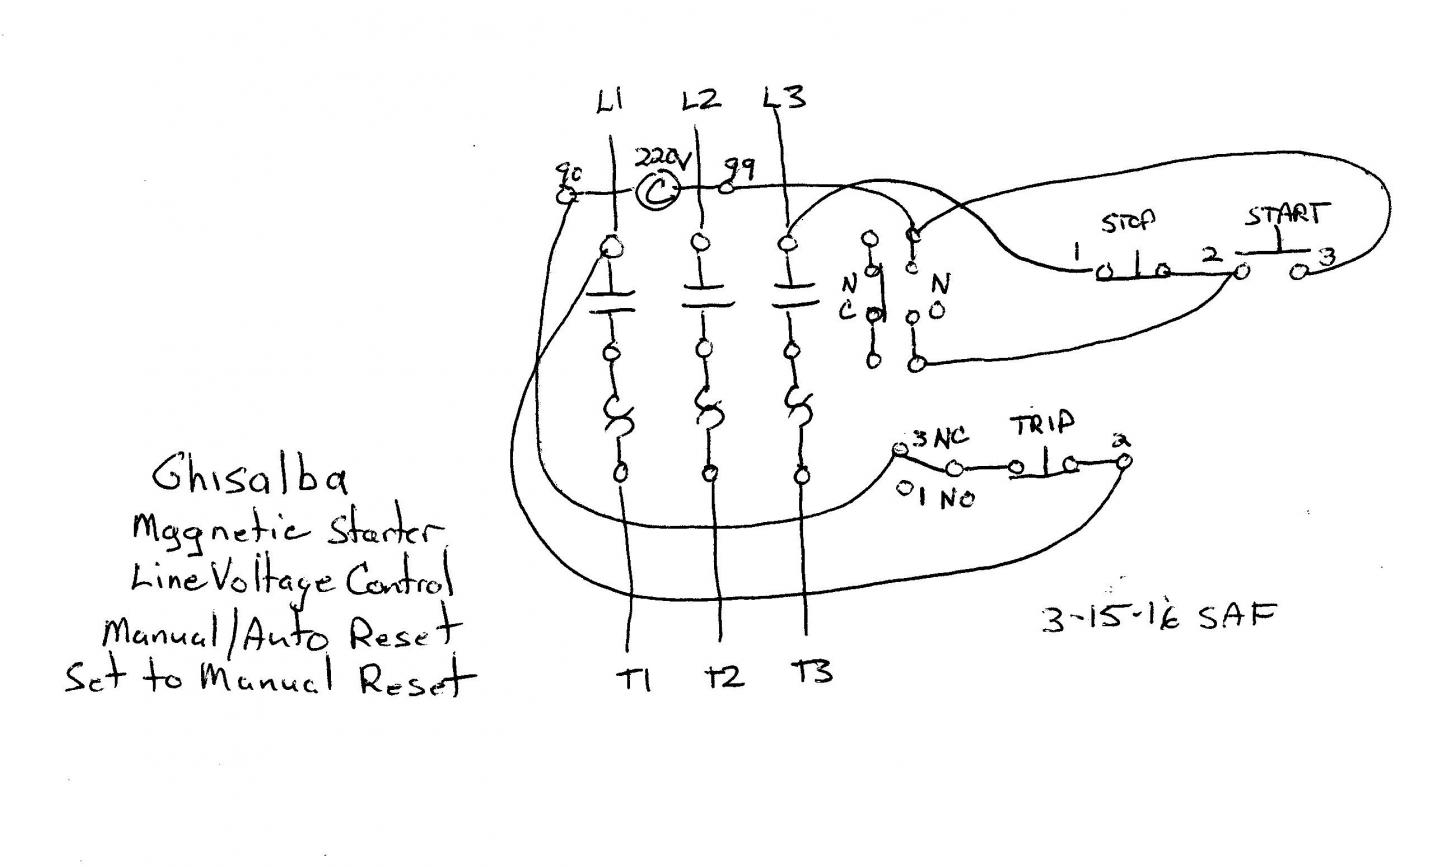 contactor wiring diagram likewise 3 phase switch wiring diagram